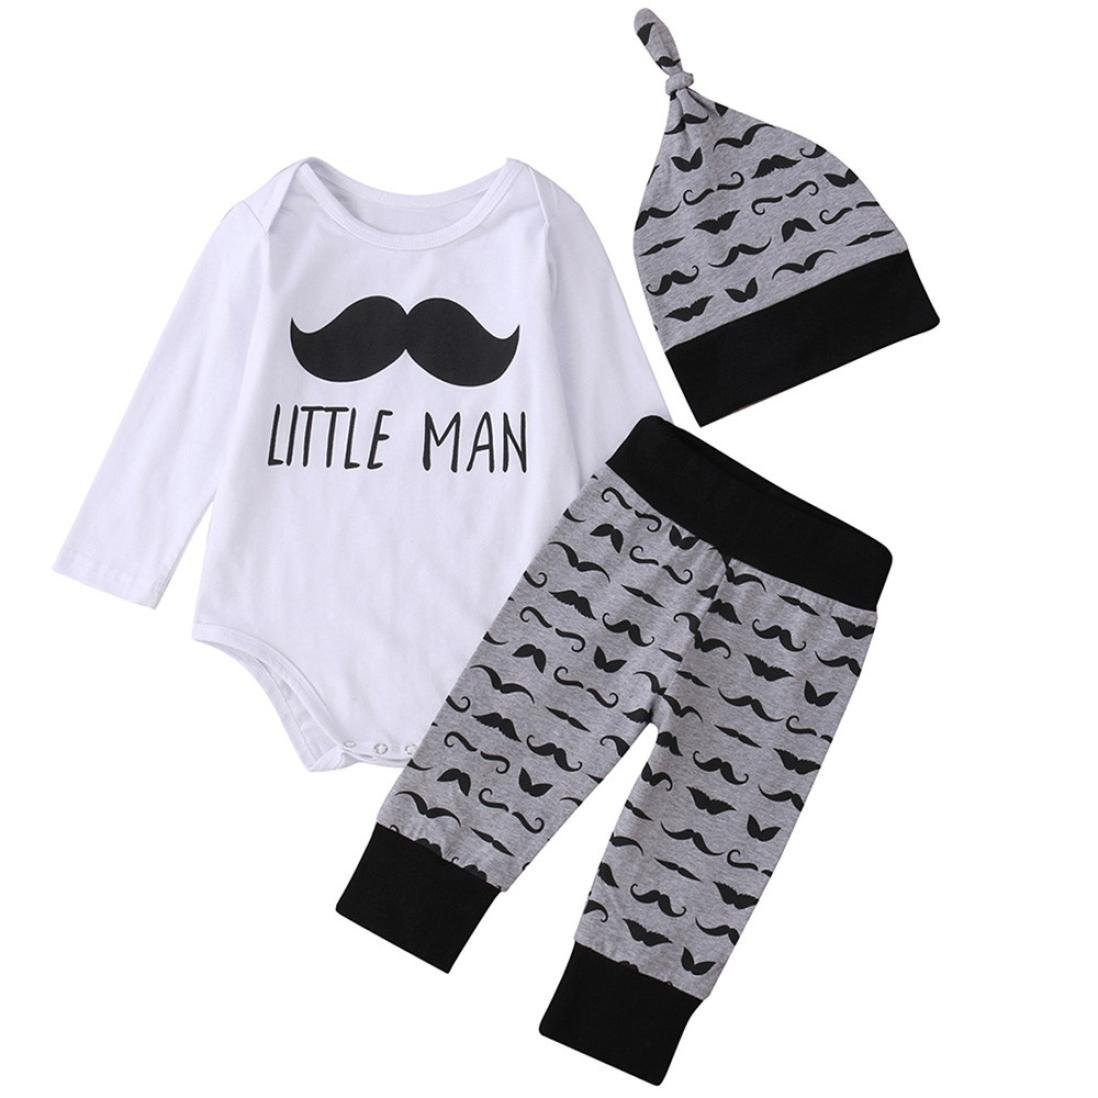 Infant Baby Boy Long Sleeve Letter Print Romper+Classic Pants+Cap Outfits Clothes Digood for 0-24 Months Baby